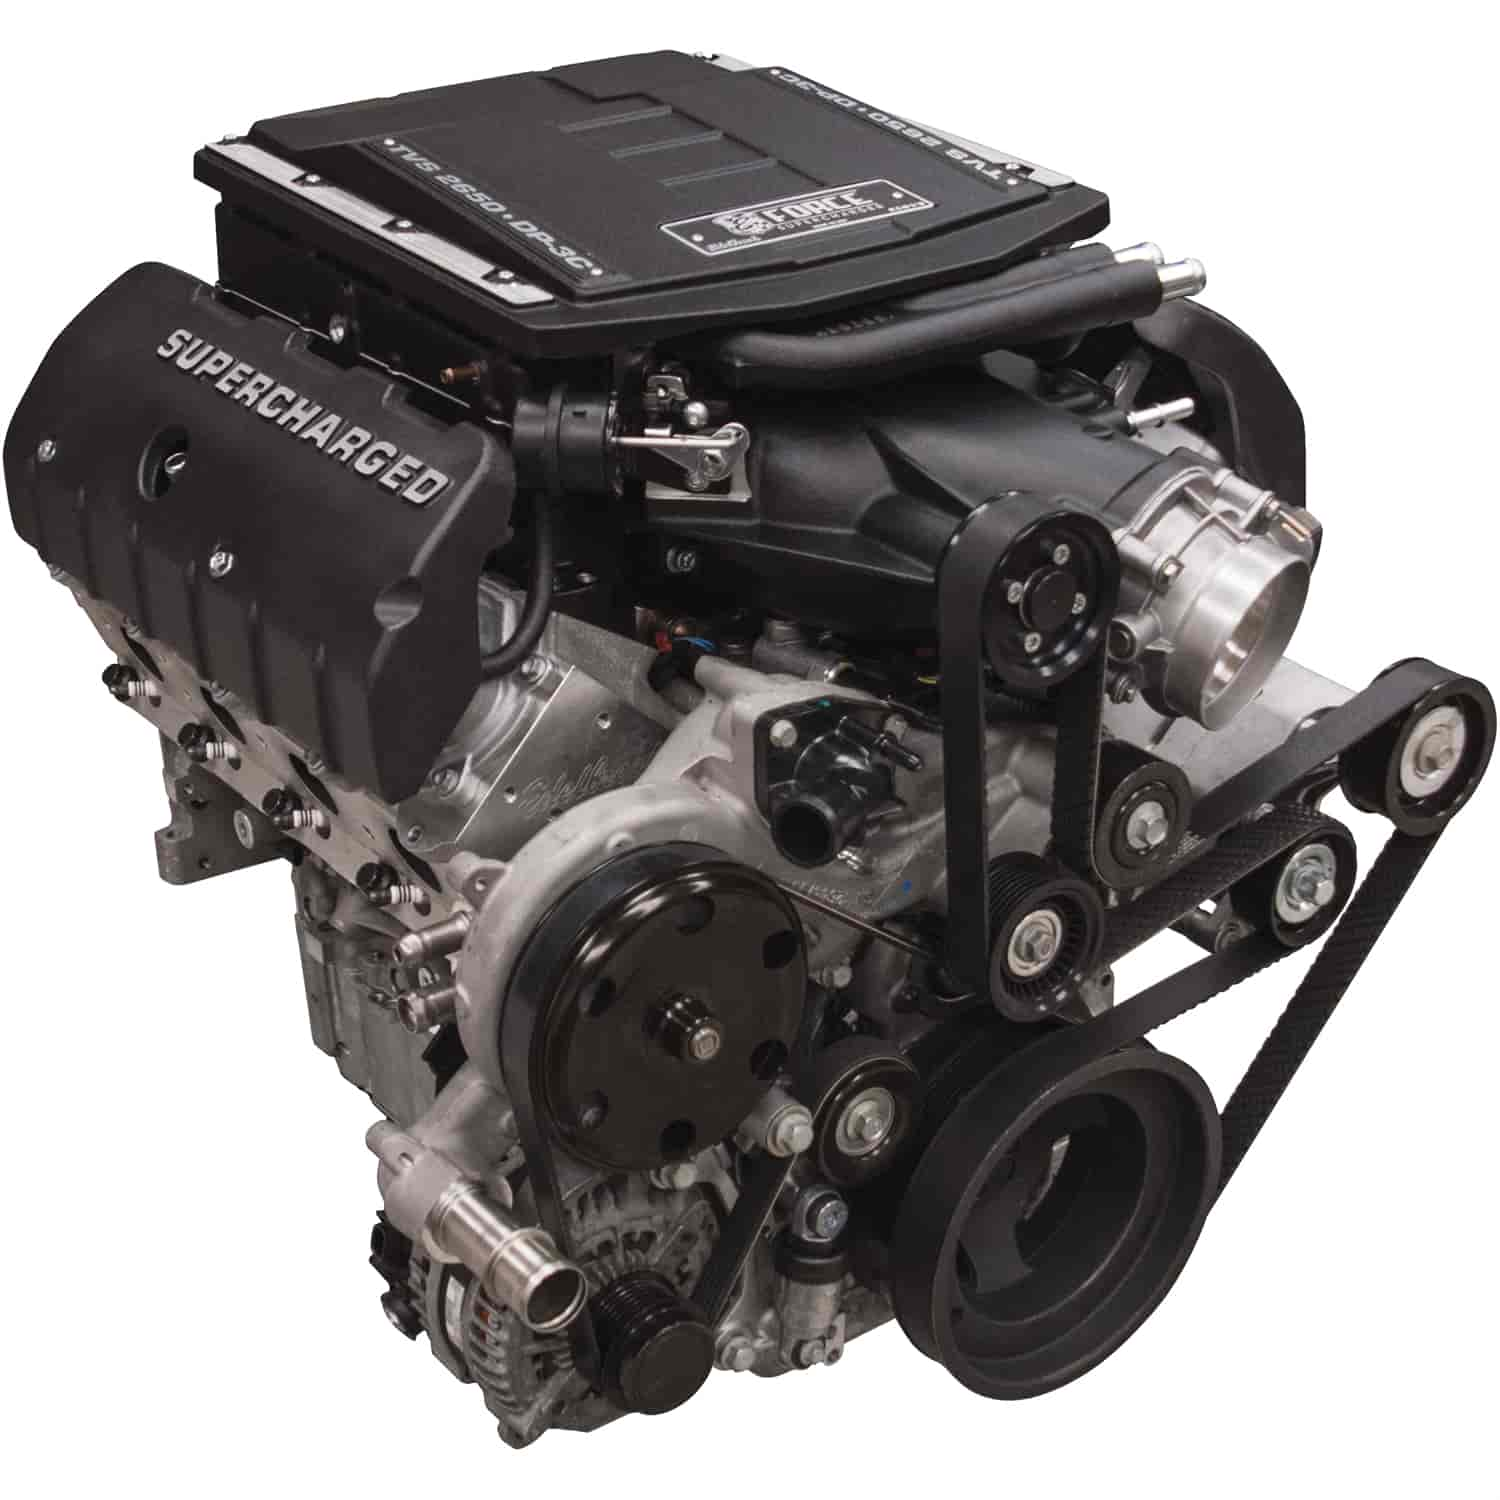 Gm Crate Engines >> Edelbrock E Force Supercharged Gm Lt 416 Crate Engine